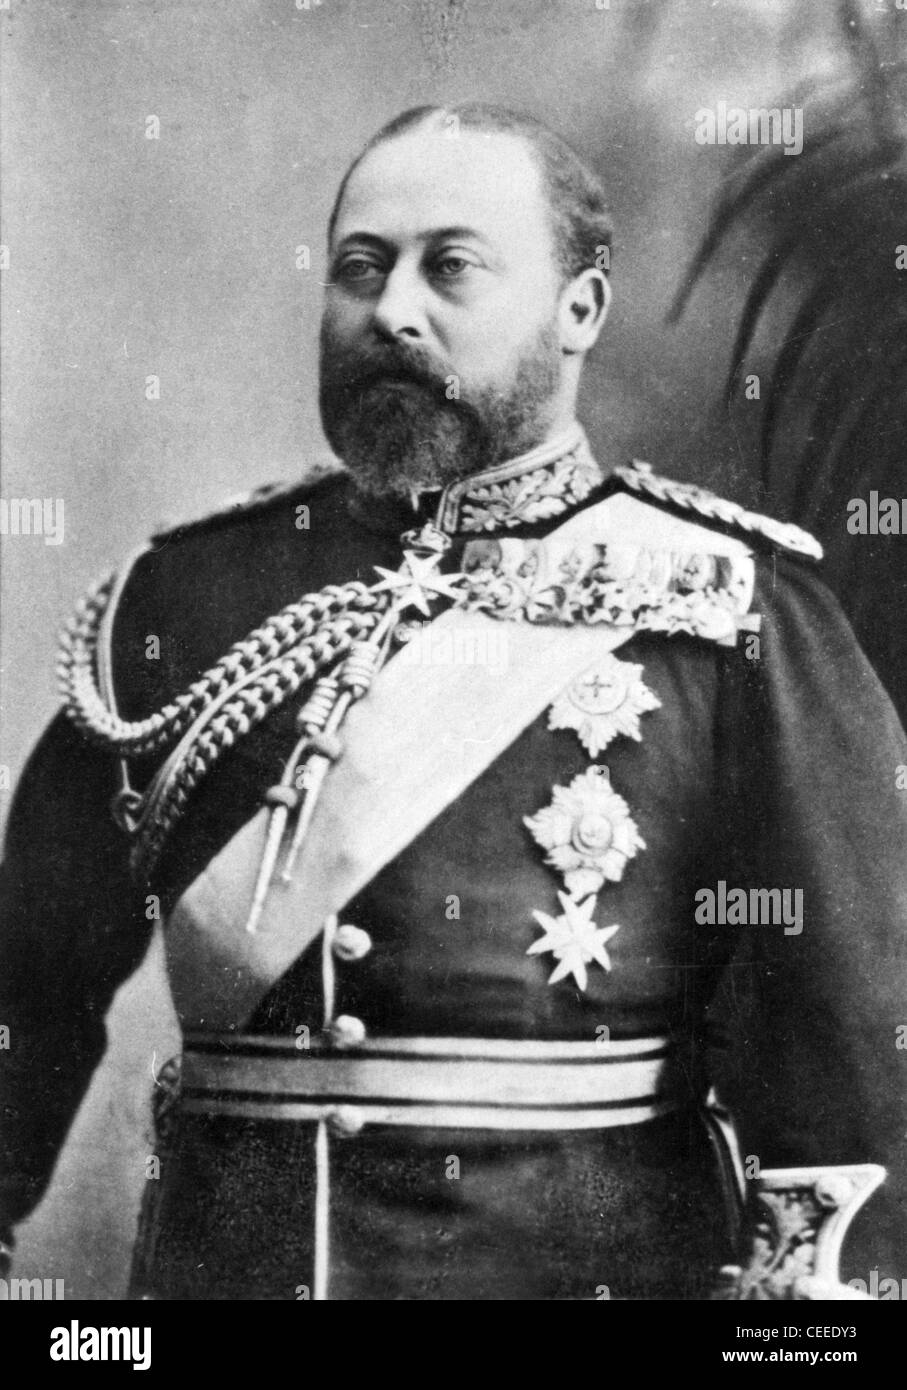 Edward VII king of Great Britain from 1901 - Stock Image